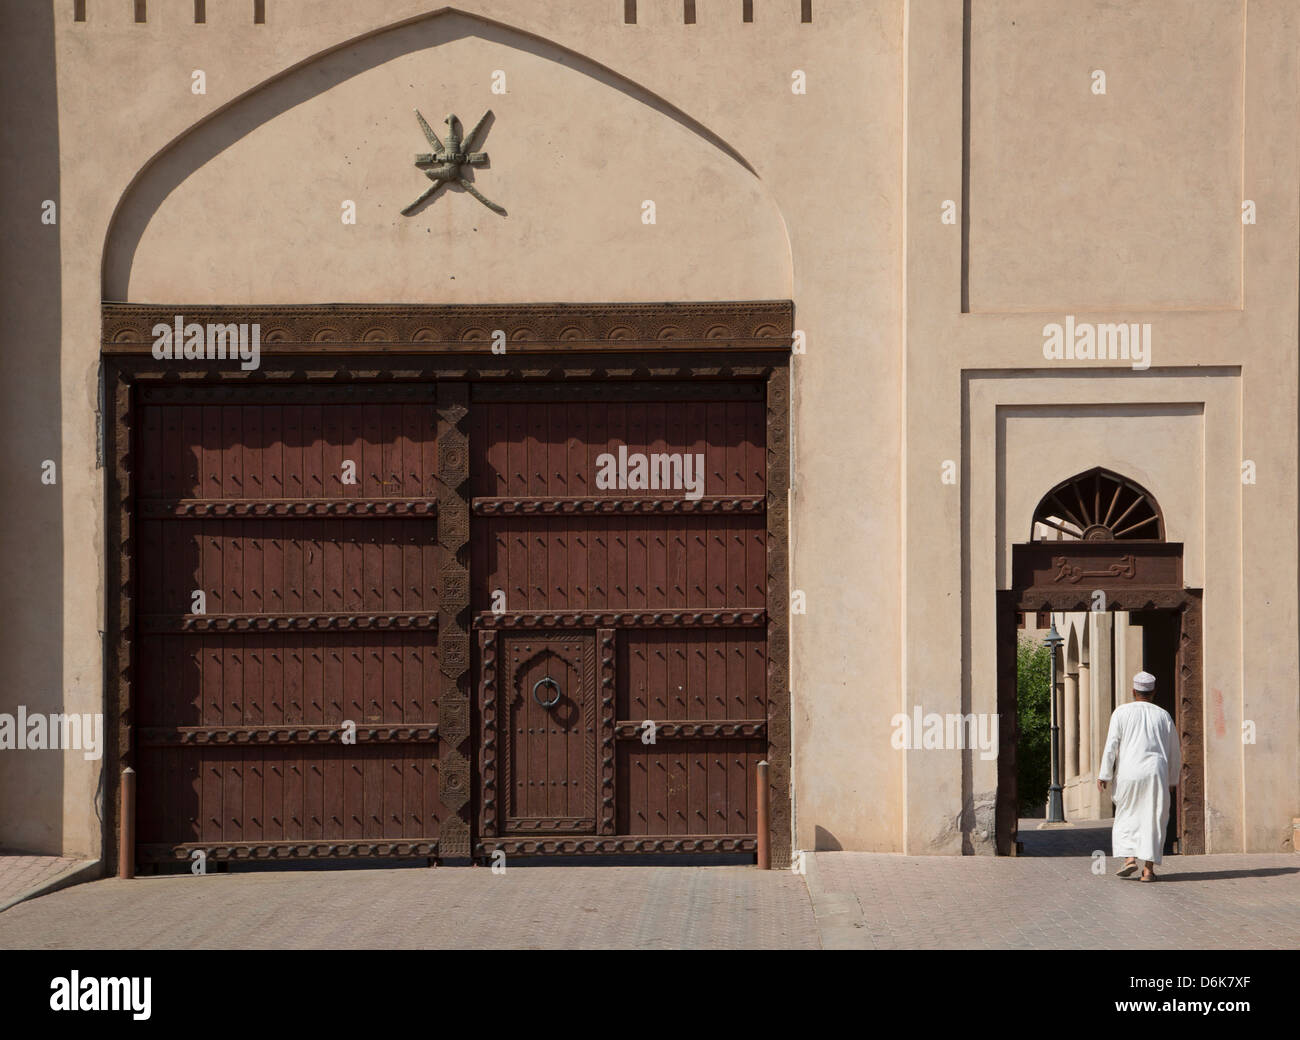 The Souk, Nizwa, Oman, Middle East - Stock Image